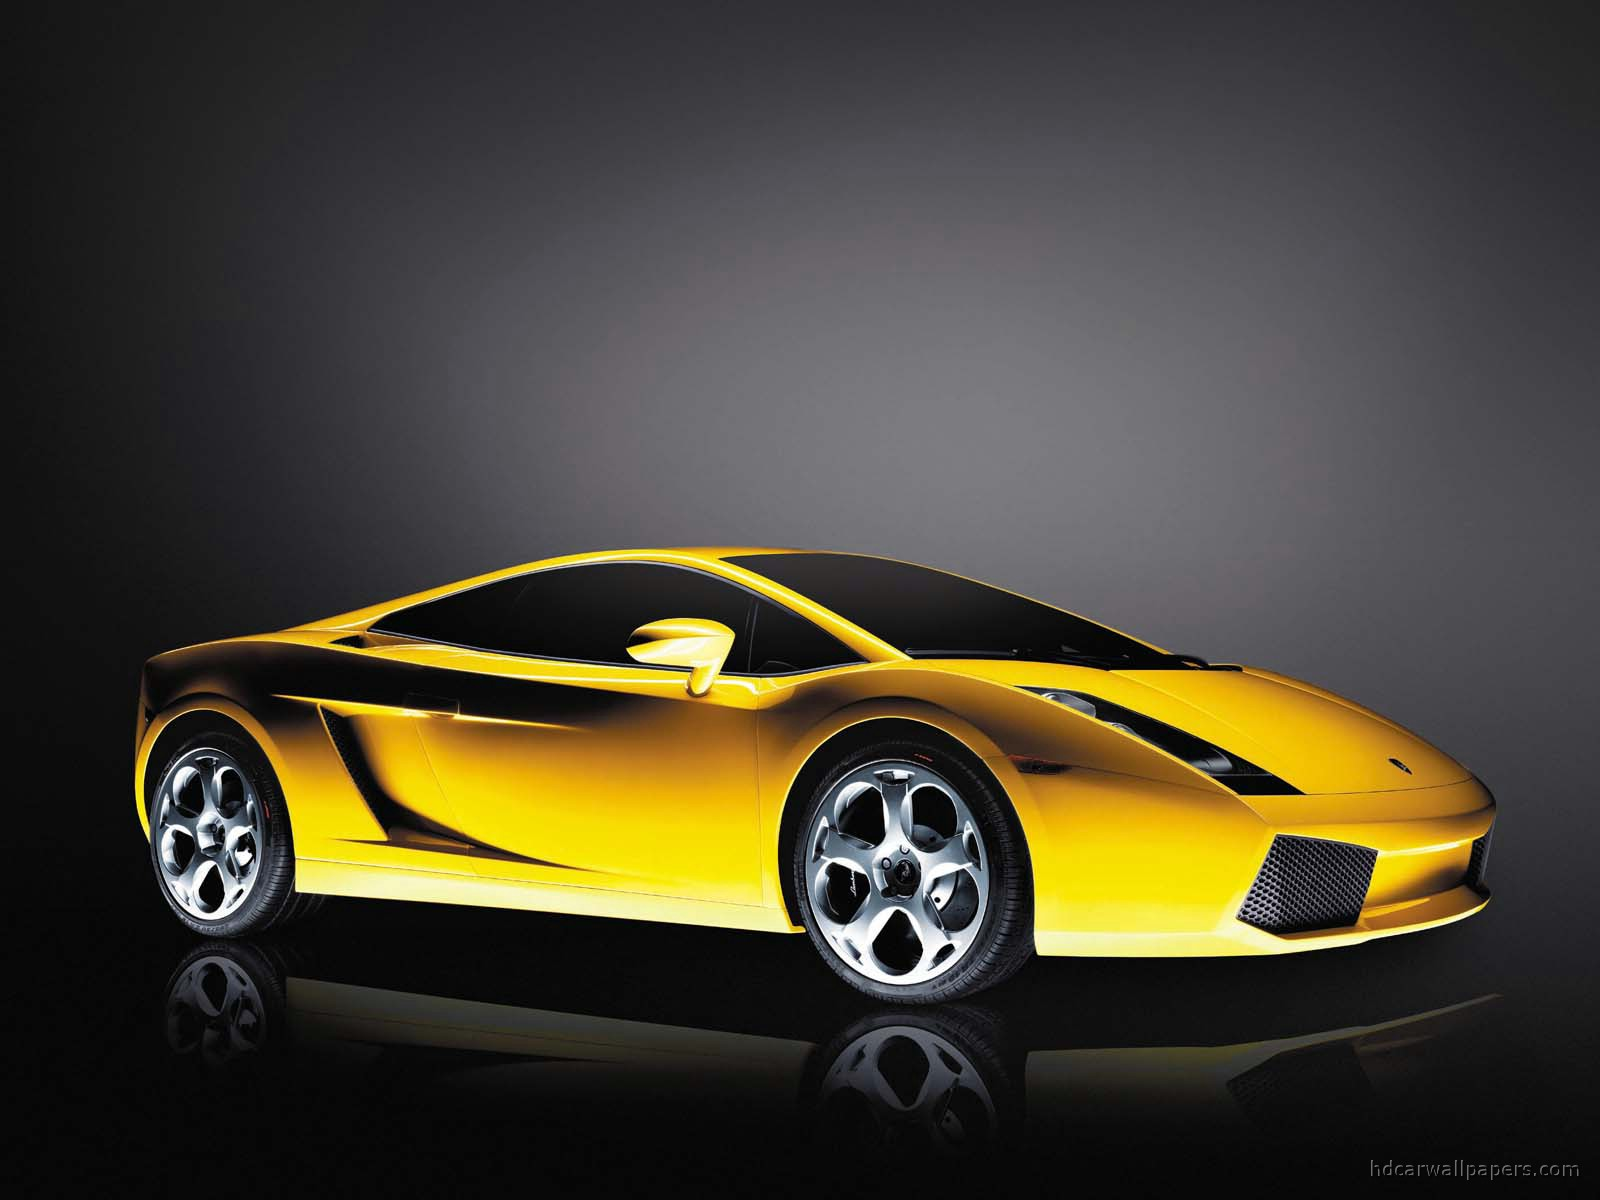 Lamborghini Cars Images Download in Original Size